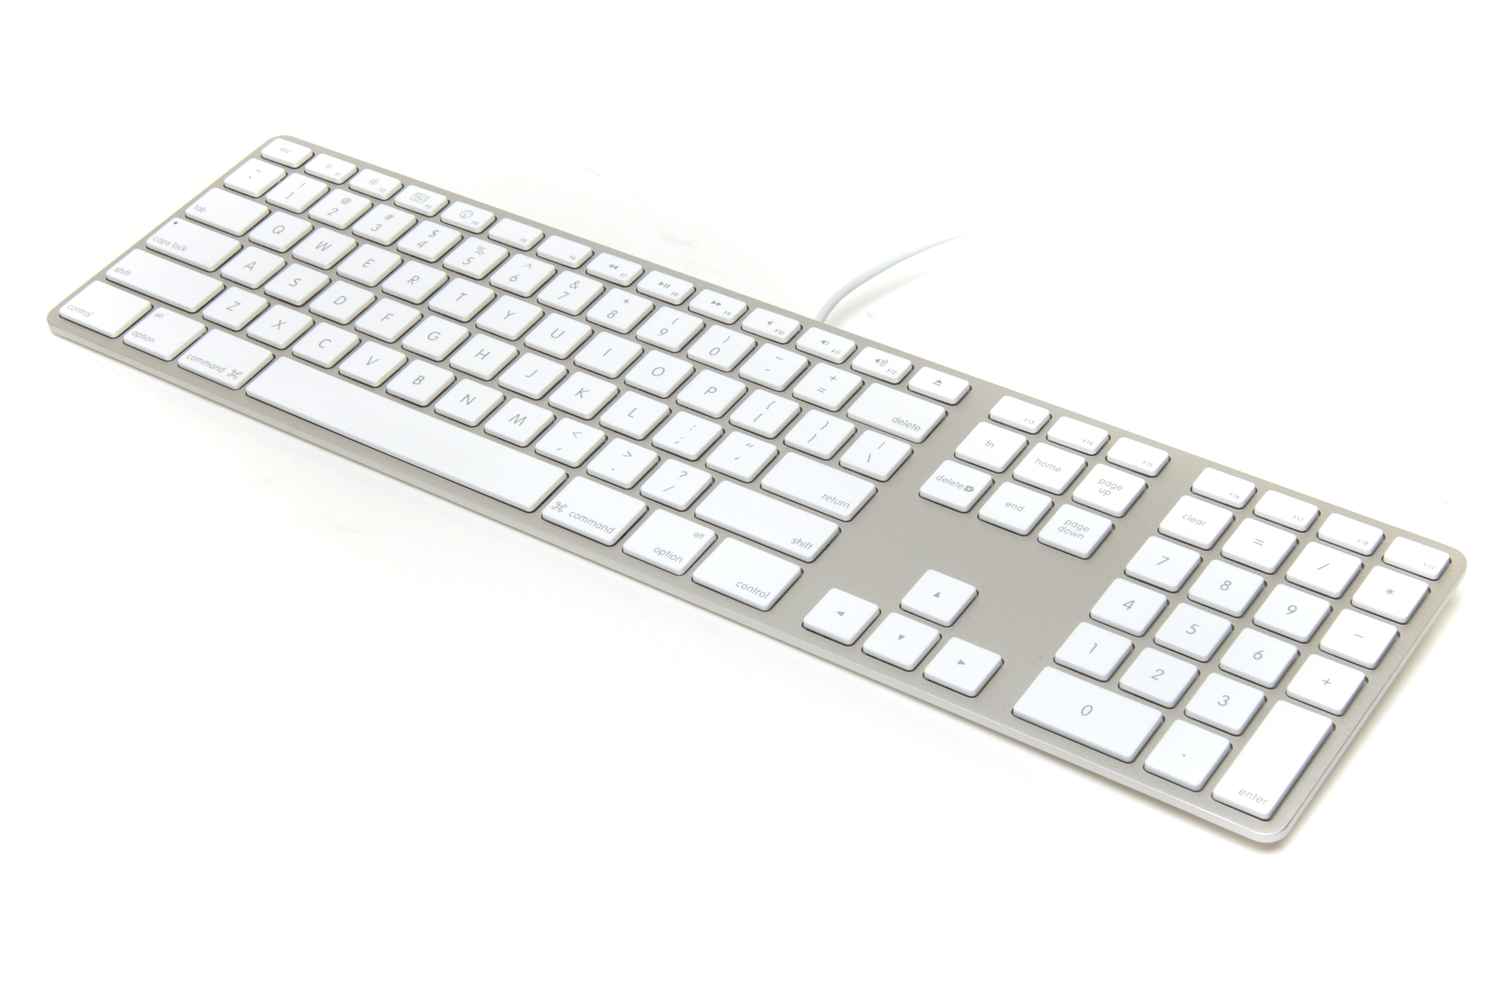 Keyboard Wired Apple : apple wired keyboard review pc components keyboards mice input devices pc world australia ~ Hamham.info Haus und Dekorationen